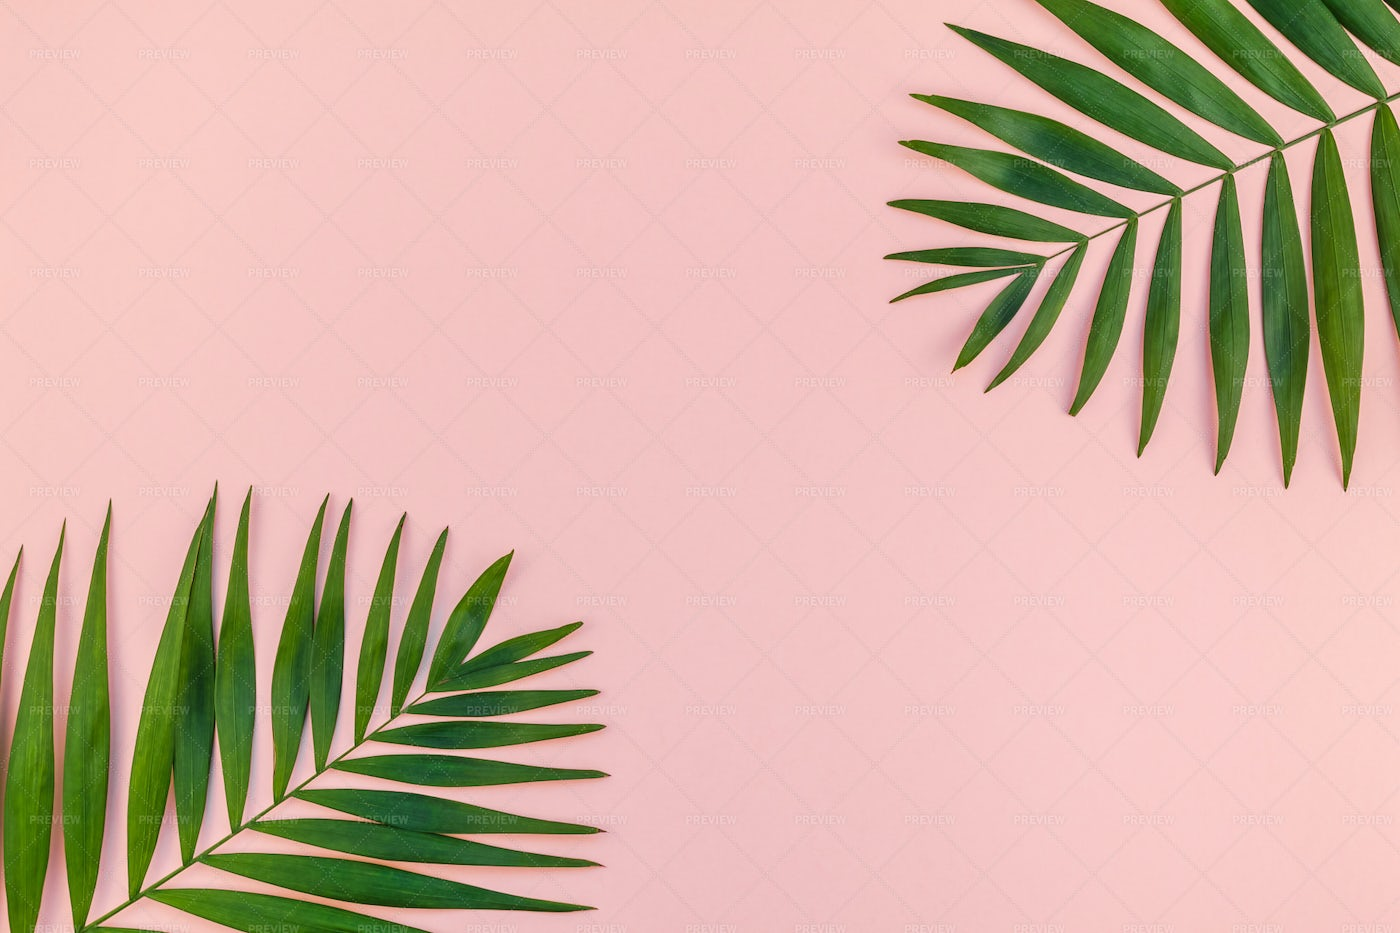 Tropical Leaves On Pink: Stock Photos